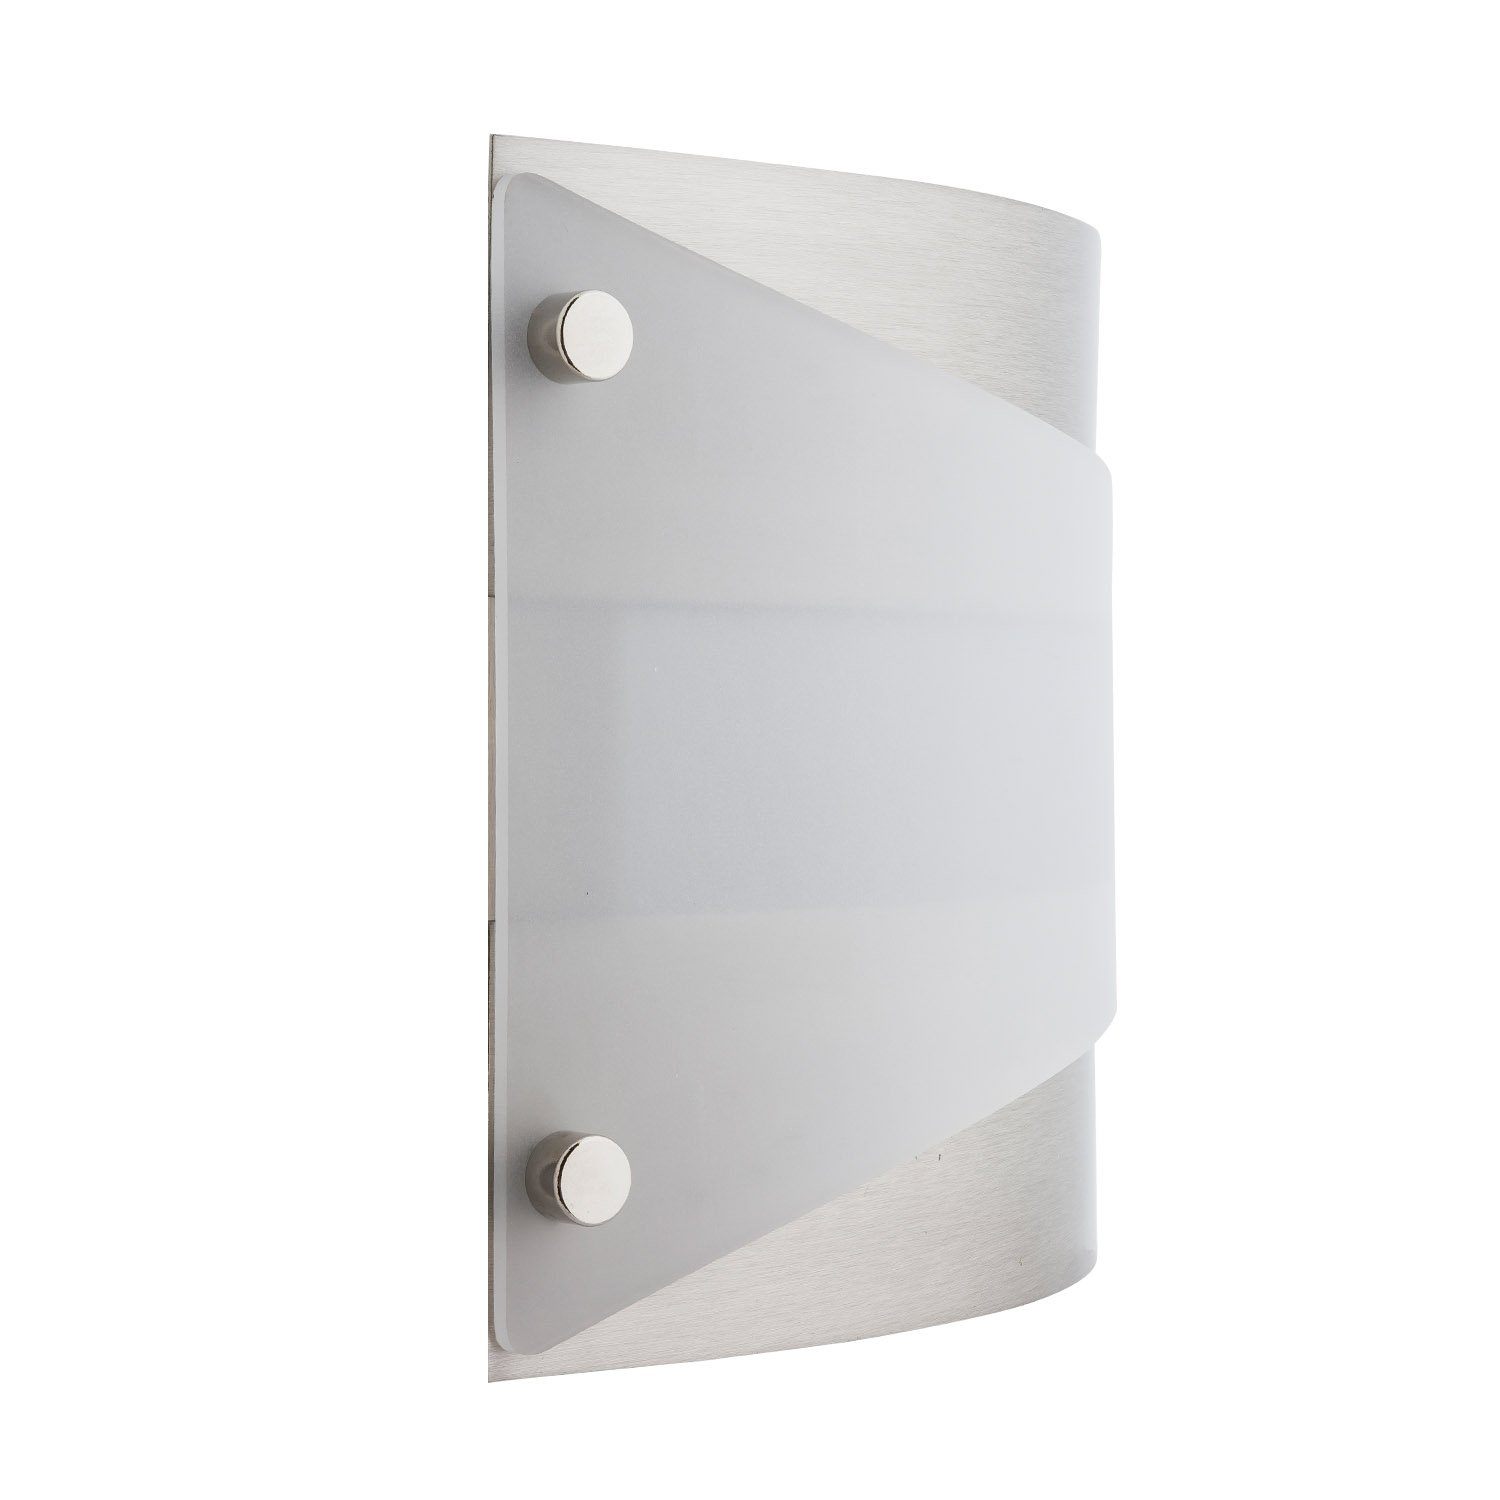 Acciaio Wall Sconce One-Light Lamp Brushed Nickel with White Diffuser - Linea di Liara LL-SC6-BN by Linea di Liara (Image #3)